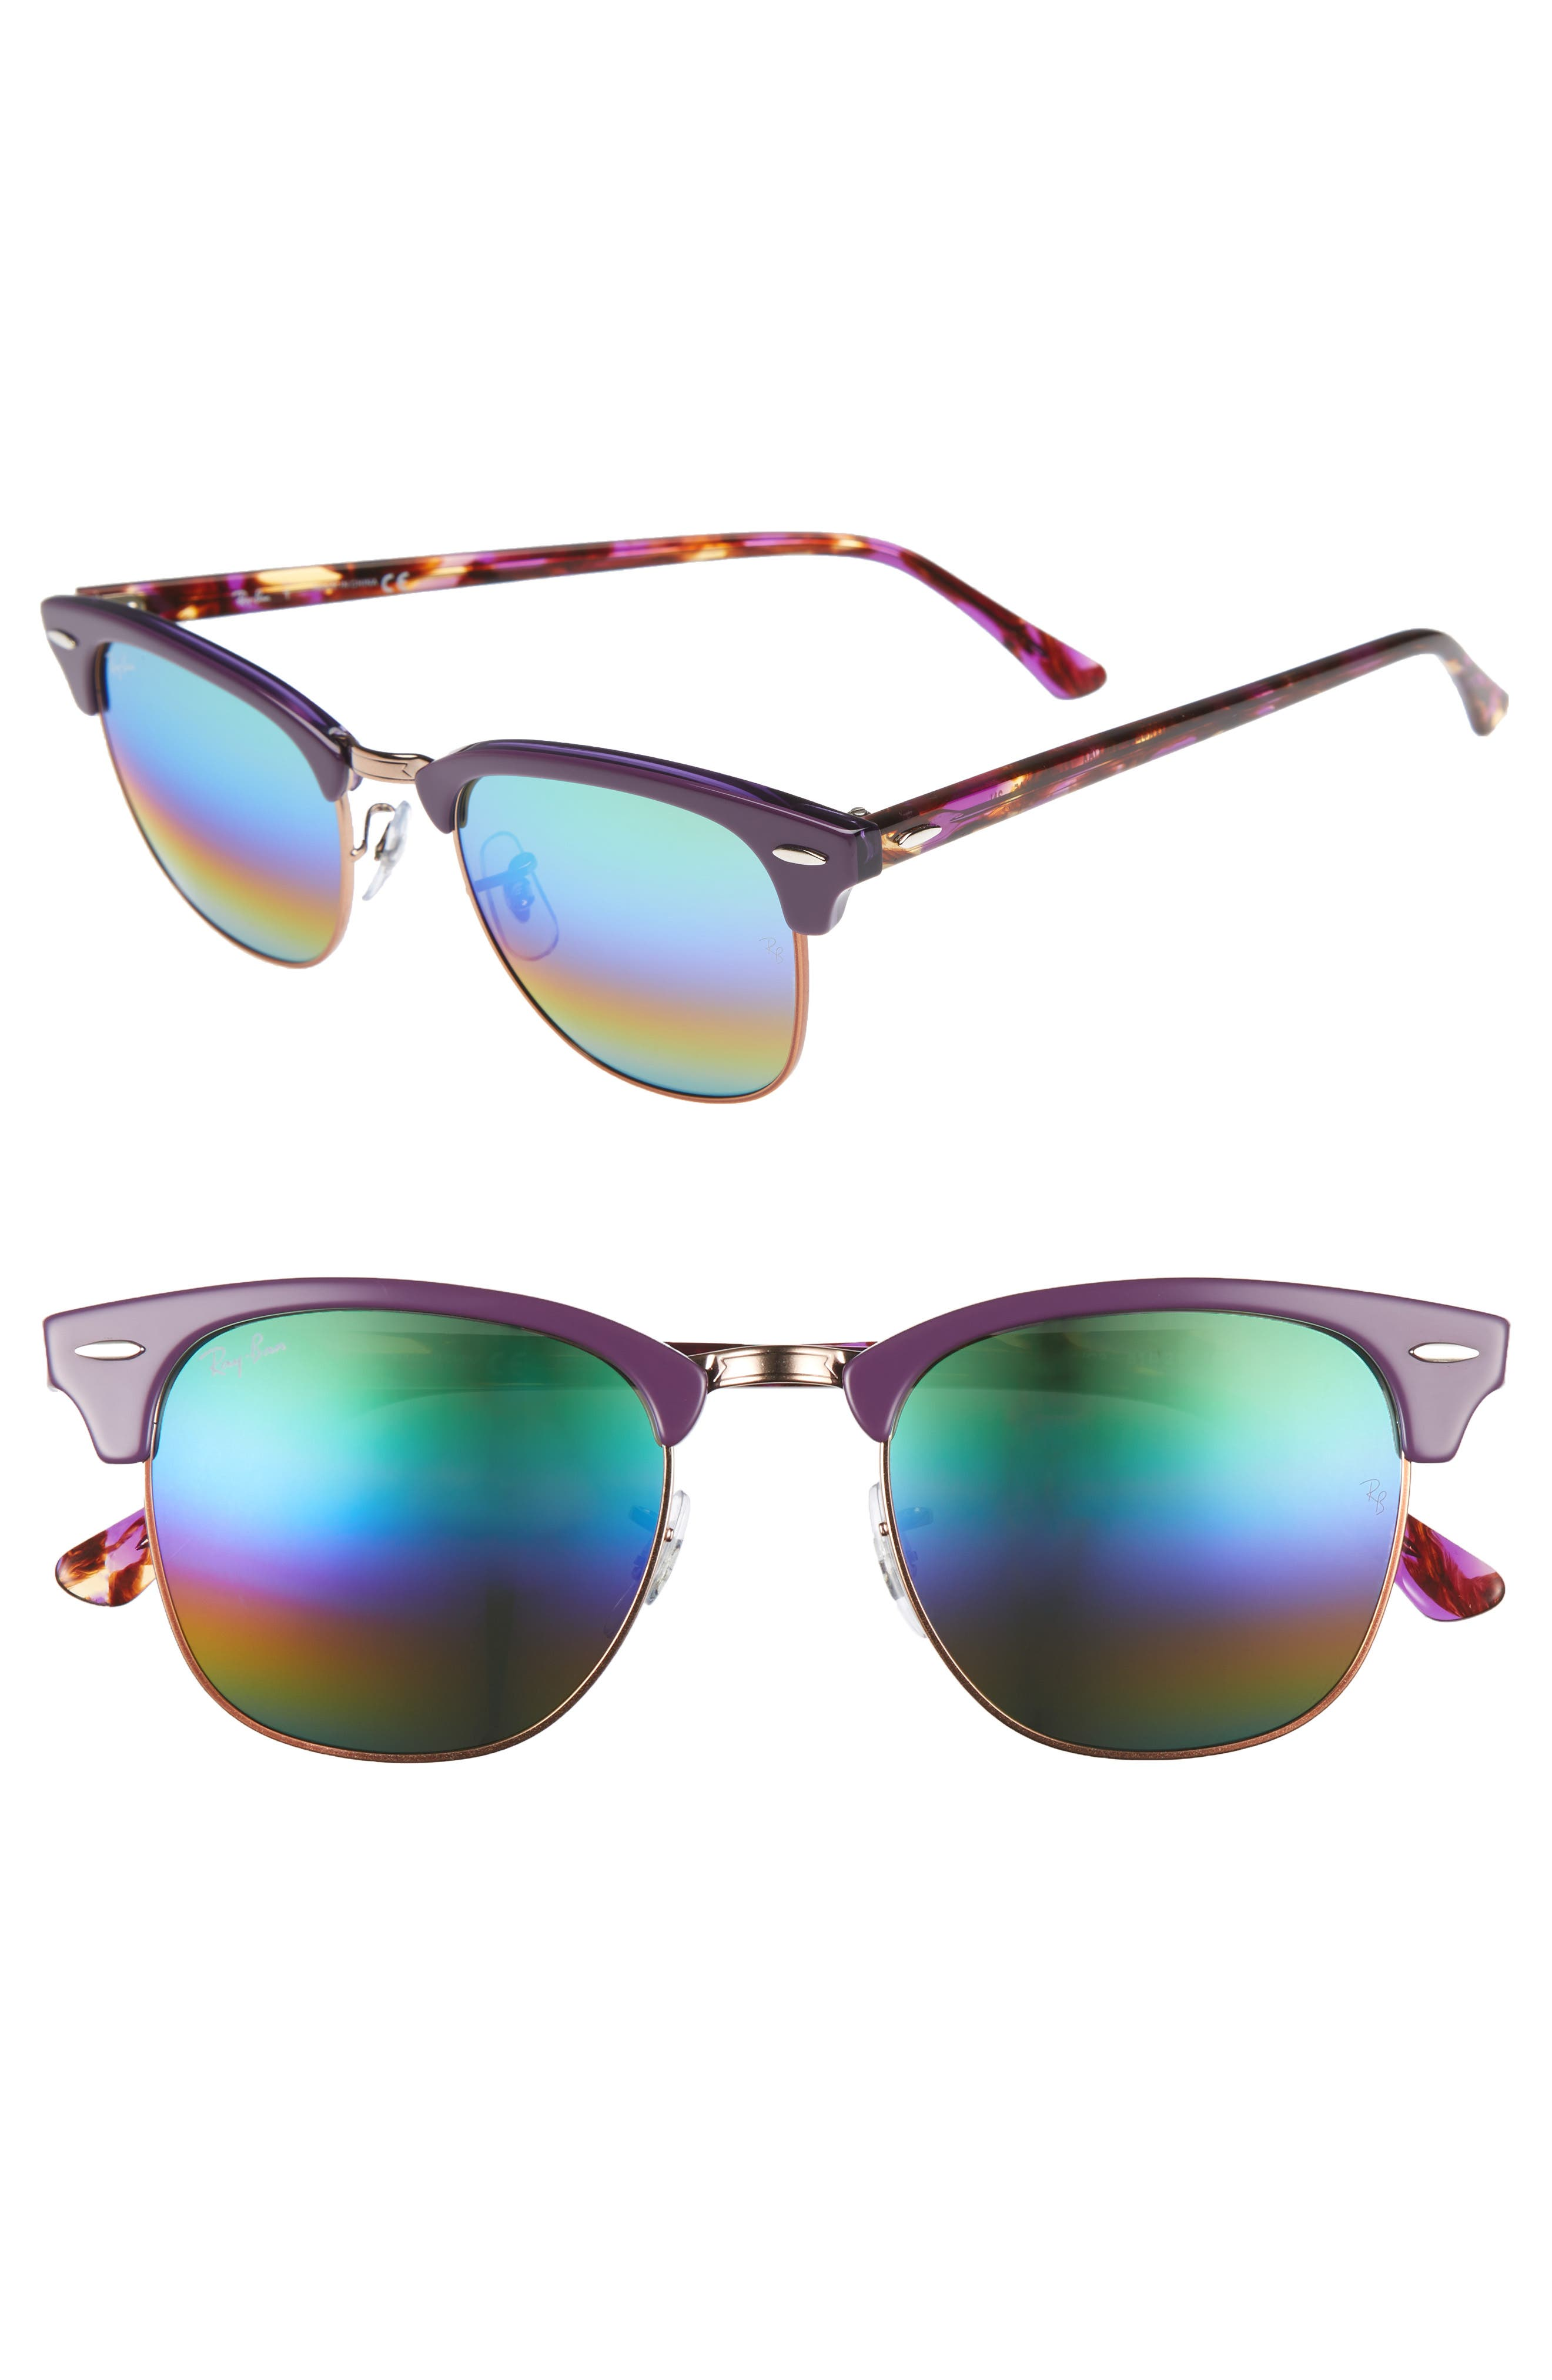 Ray-Ban Standard Clubmaster 51mm Mirrored Rainbow Sunglasses